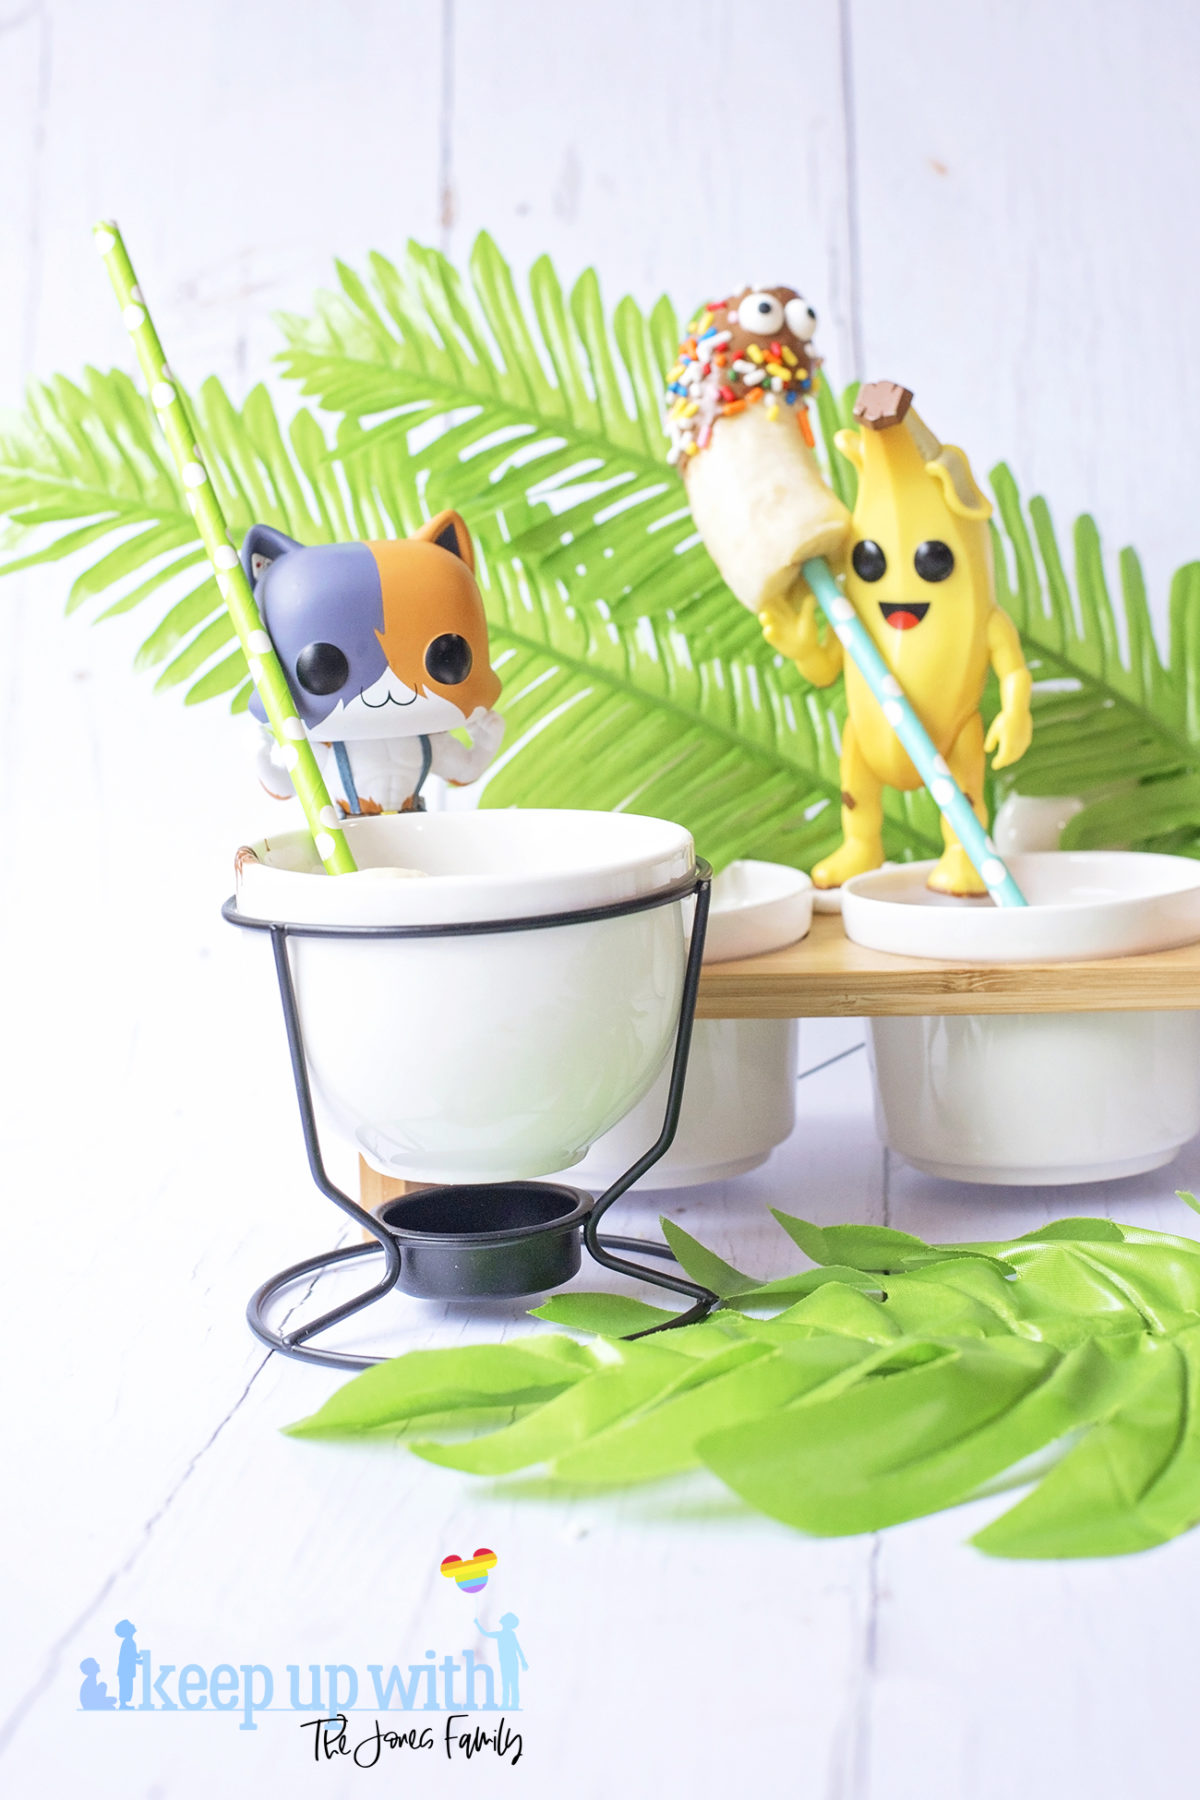 Image shows Peely's Banana Fortnite Fondue Bar, fun food for families. A Funko Pop Vinyl Peely and Meowscles stand on a fondue bar stirring chocolate with bananas on sticks. Image by Sara-Jayne from Keep Up With The Jones Family.